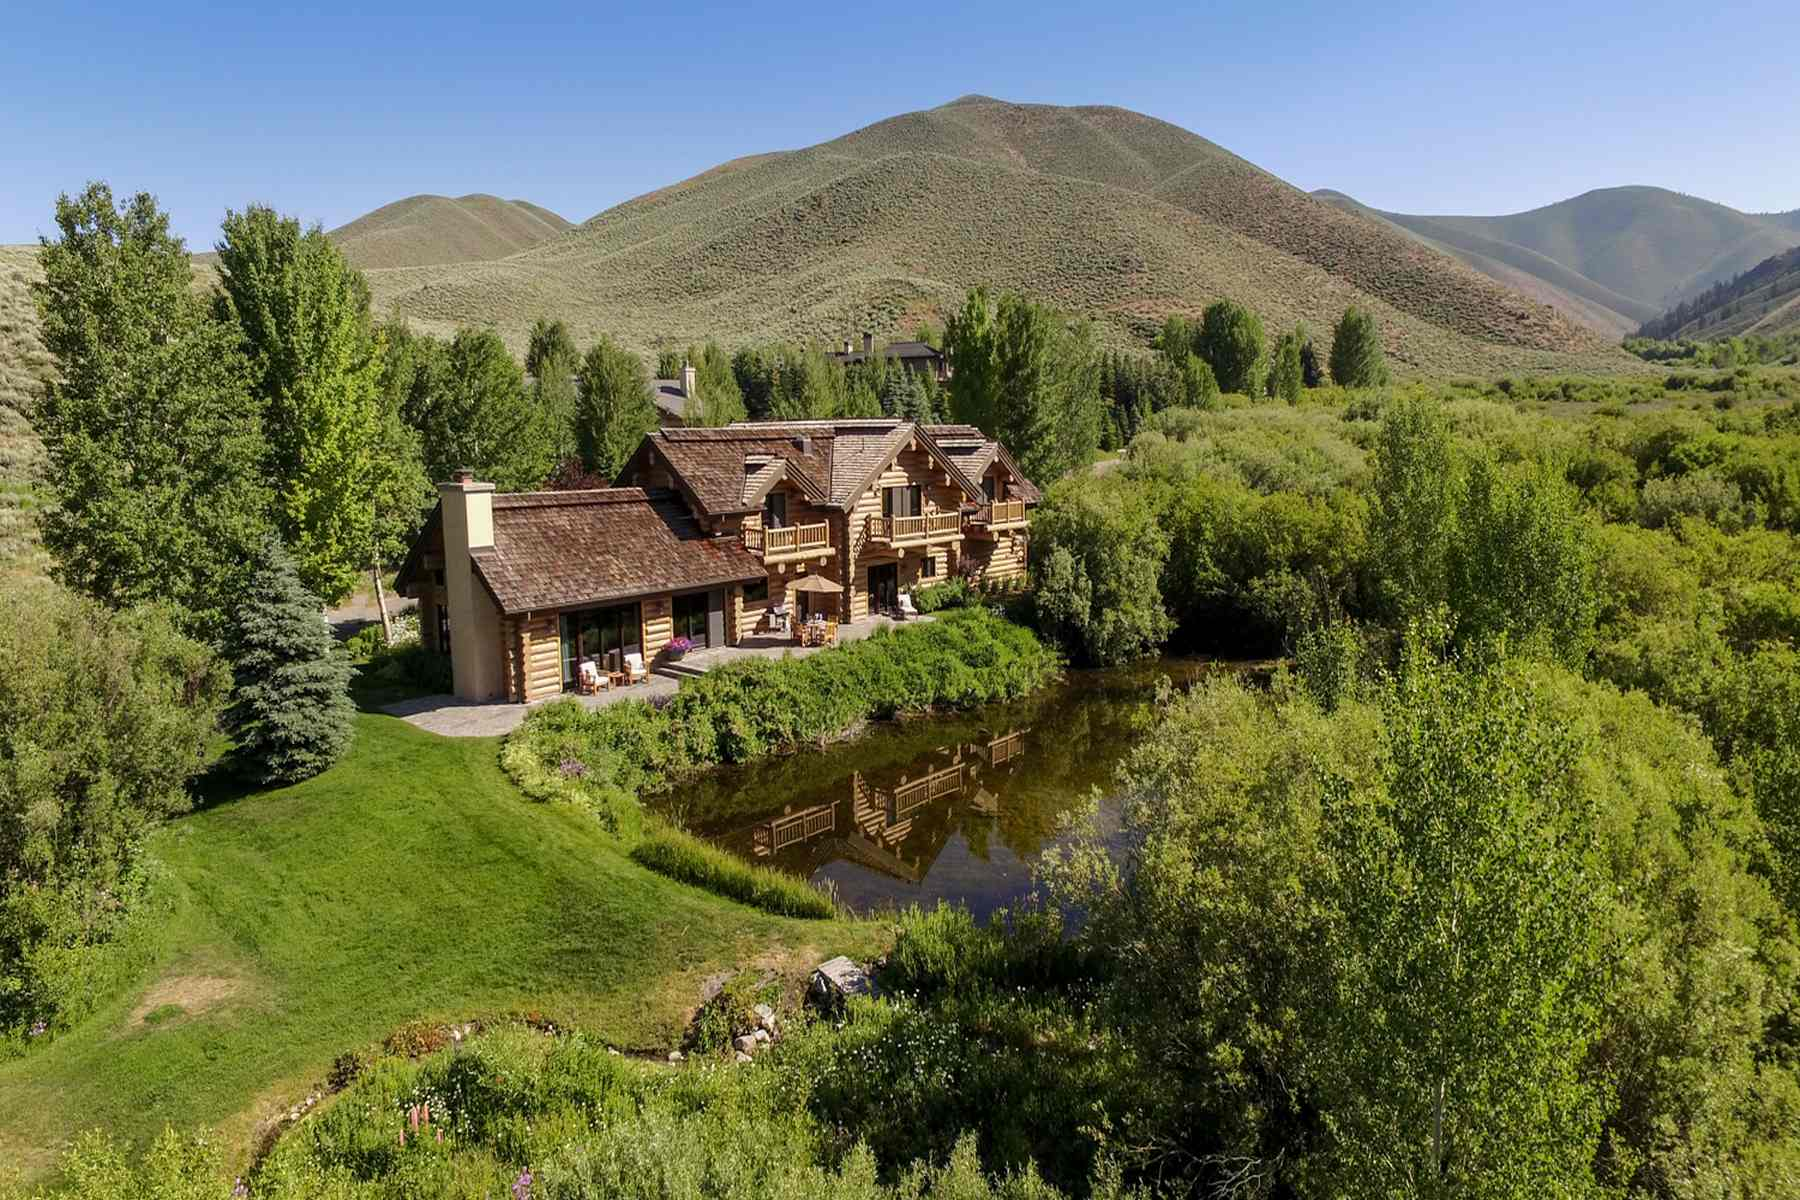 Single Family Home for Sale at Waterfront Lodge-Style Sun Valley Home 104 Silver Queen Dr Elkhorn, Sun Valley, Idaho, 83353 United States